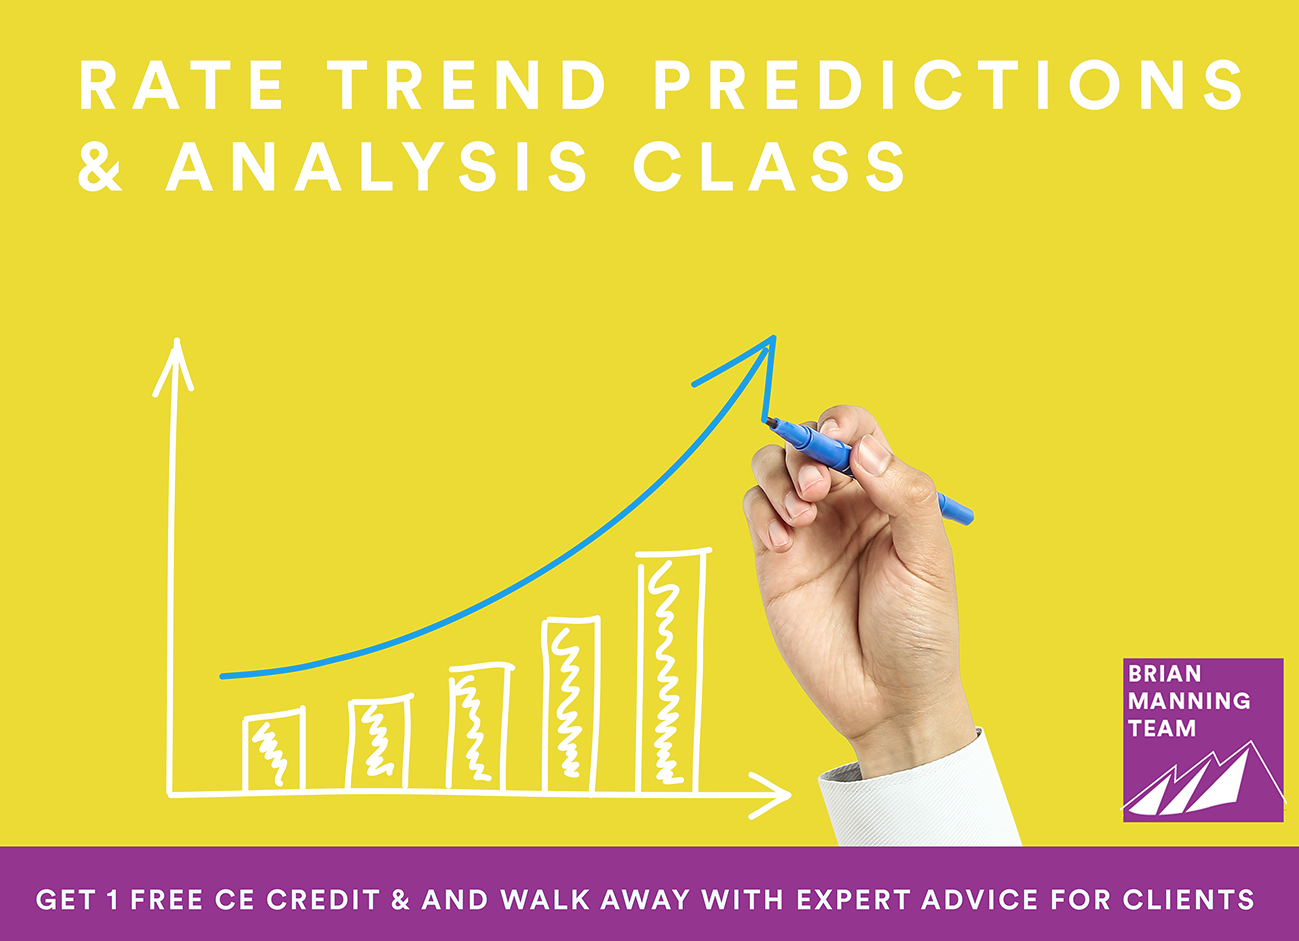 Rate Trend Predictions and Analysis